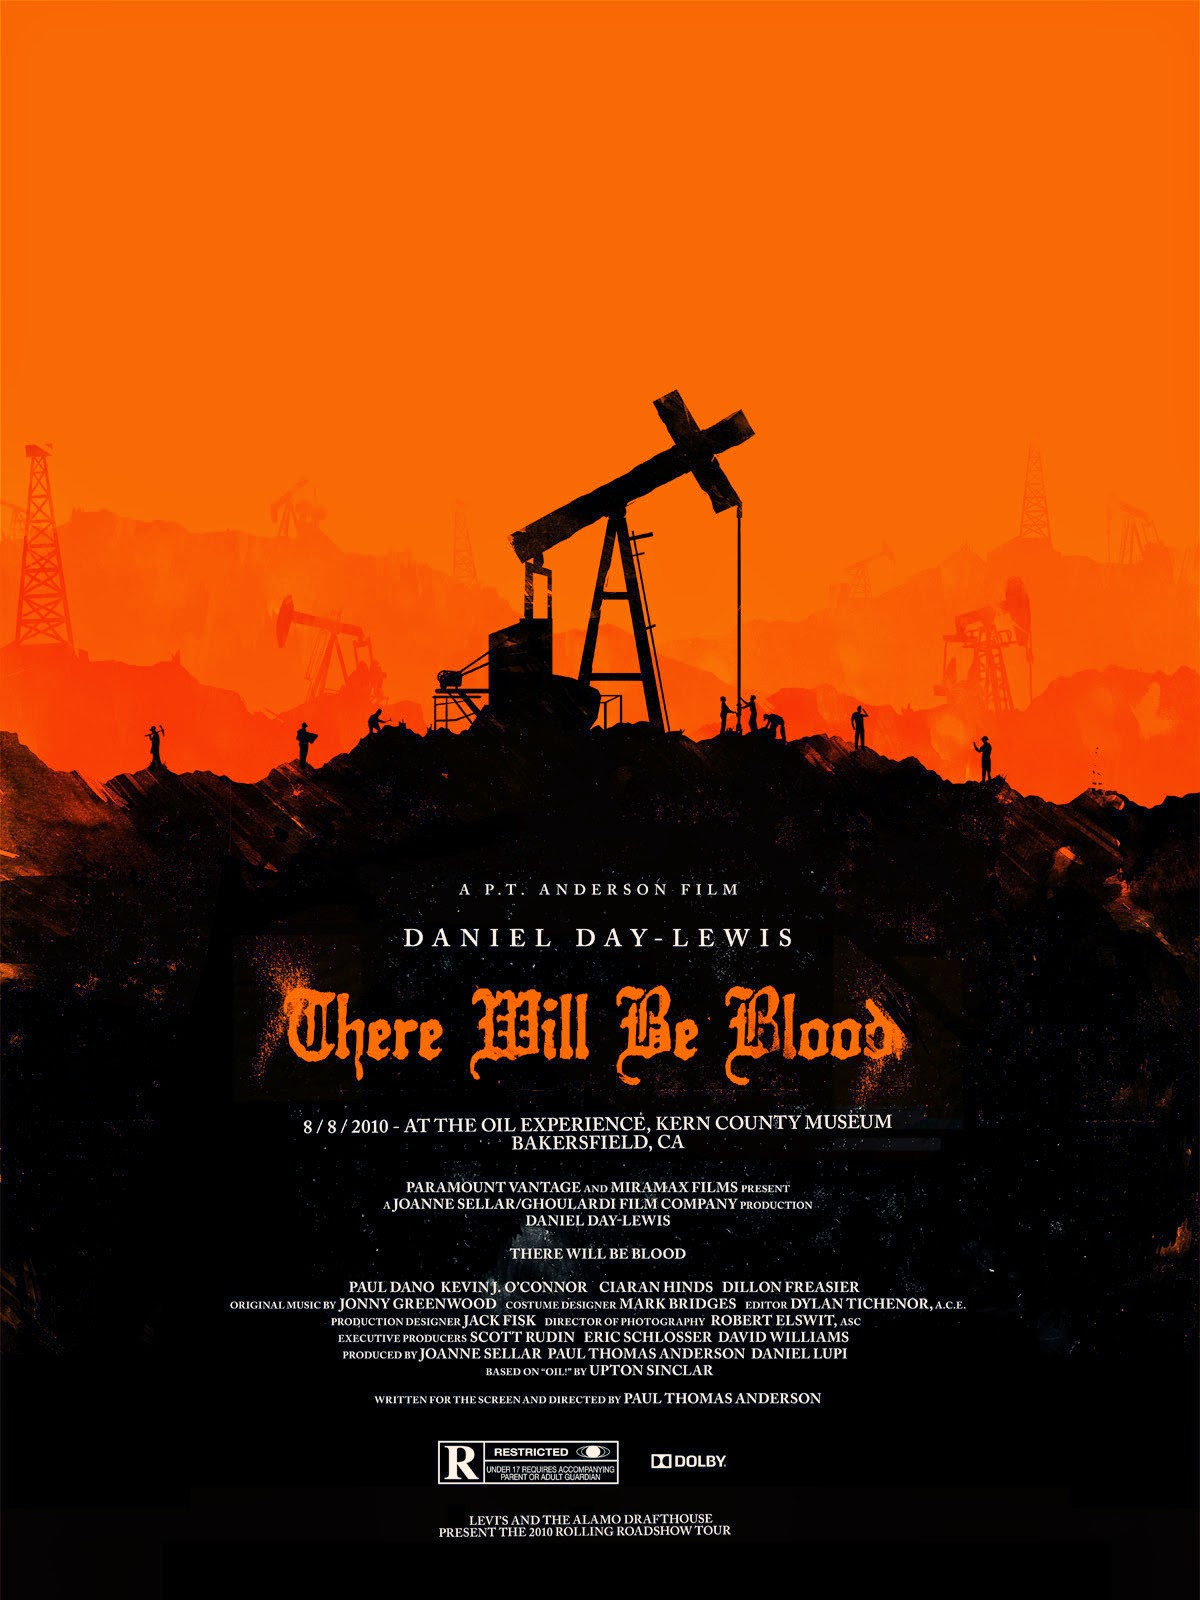 there will be blood dir paul thomas anderson discreet there will be blood american alamo drafthouse poster via flick facts click the poster for a larger image